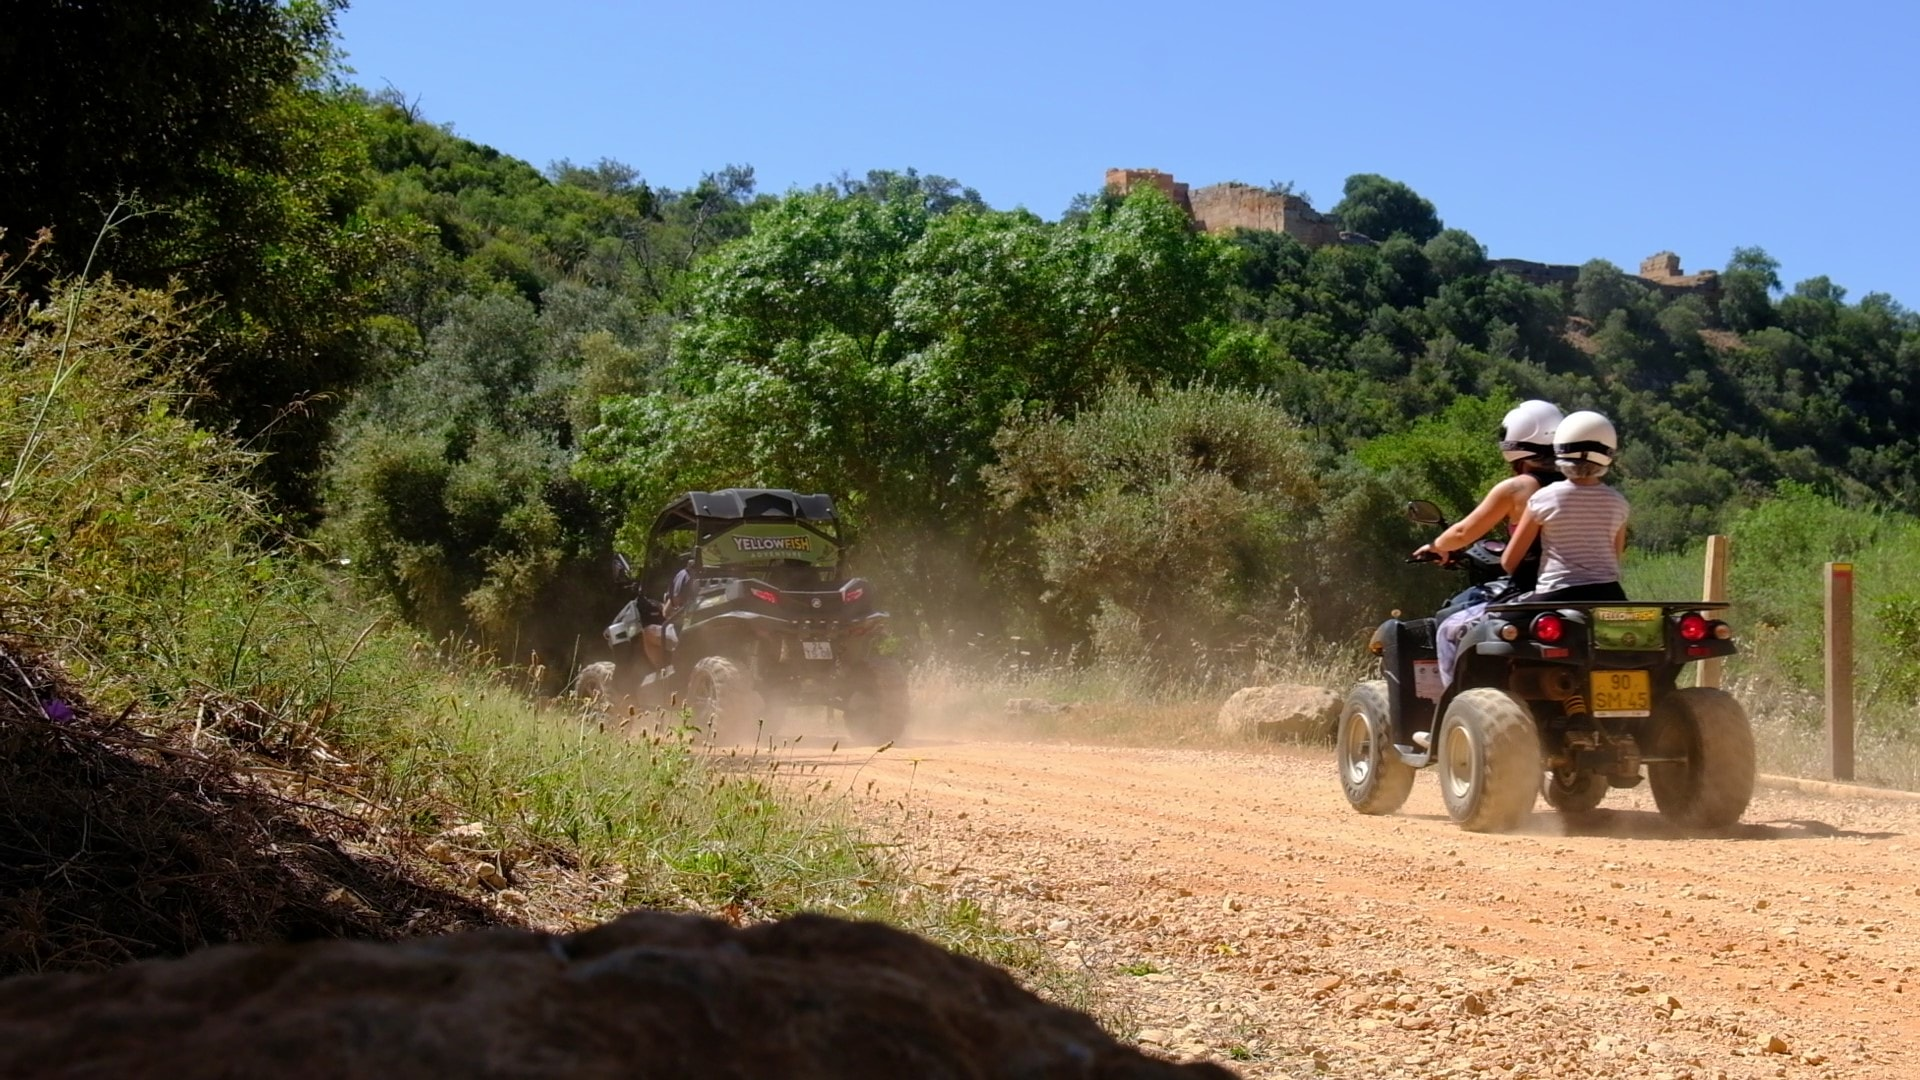 Have you ever explored the Algarve countryside?